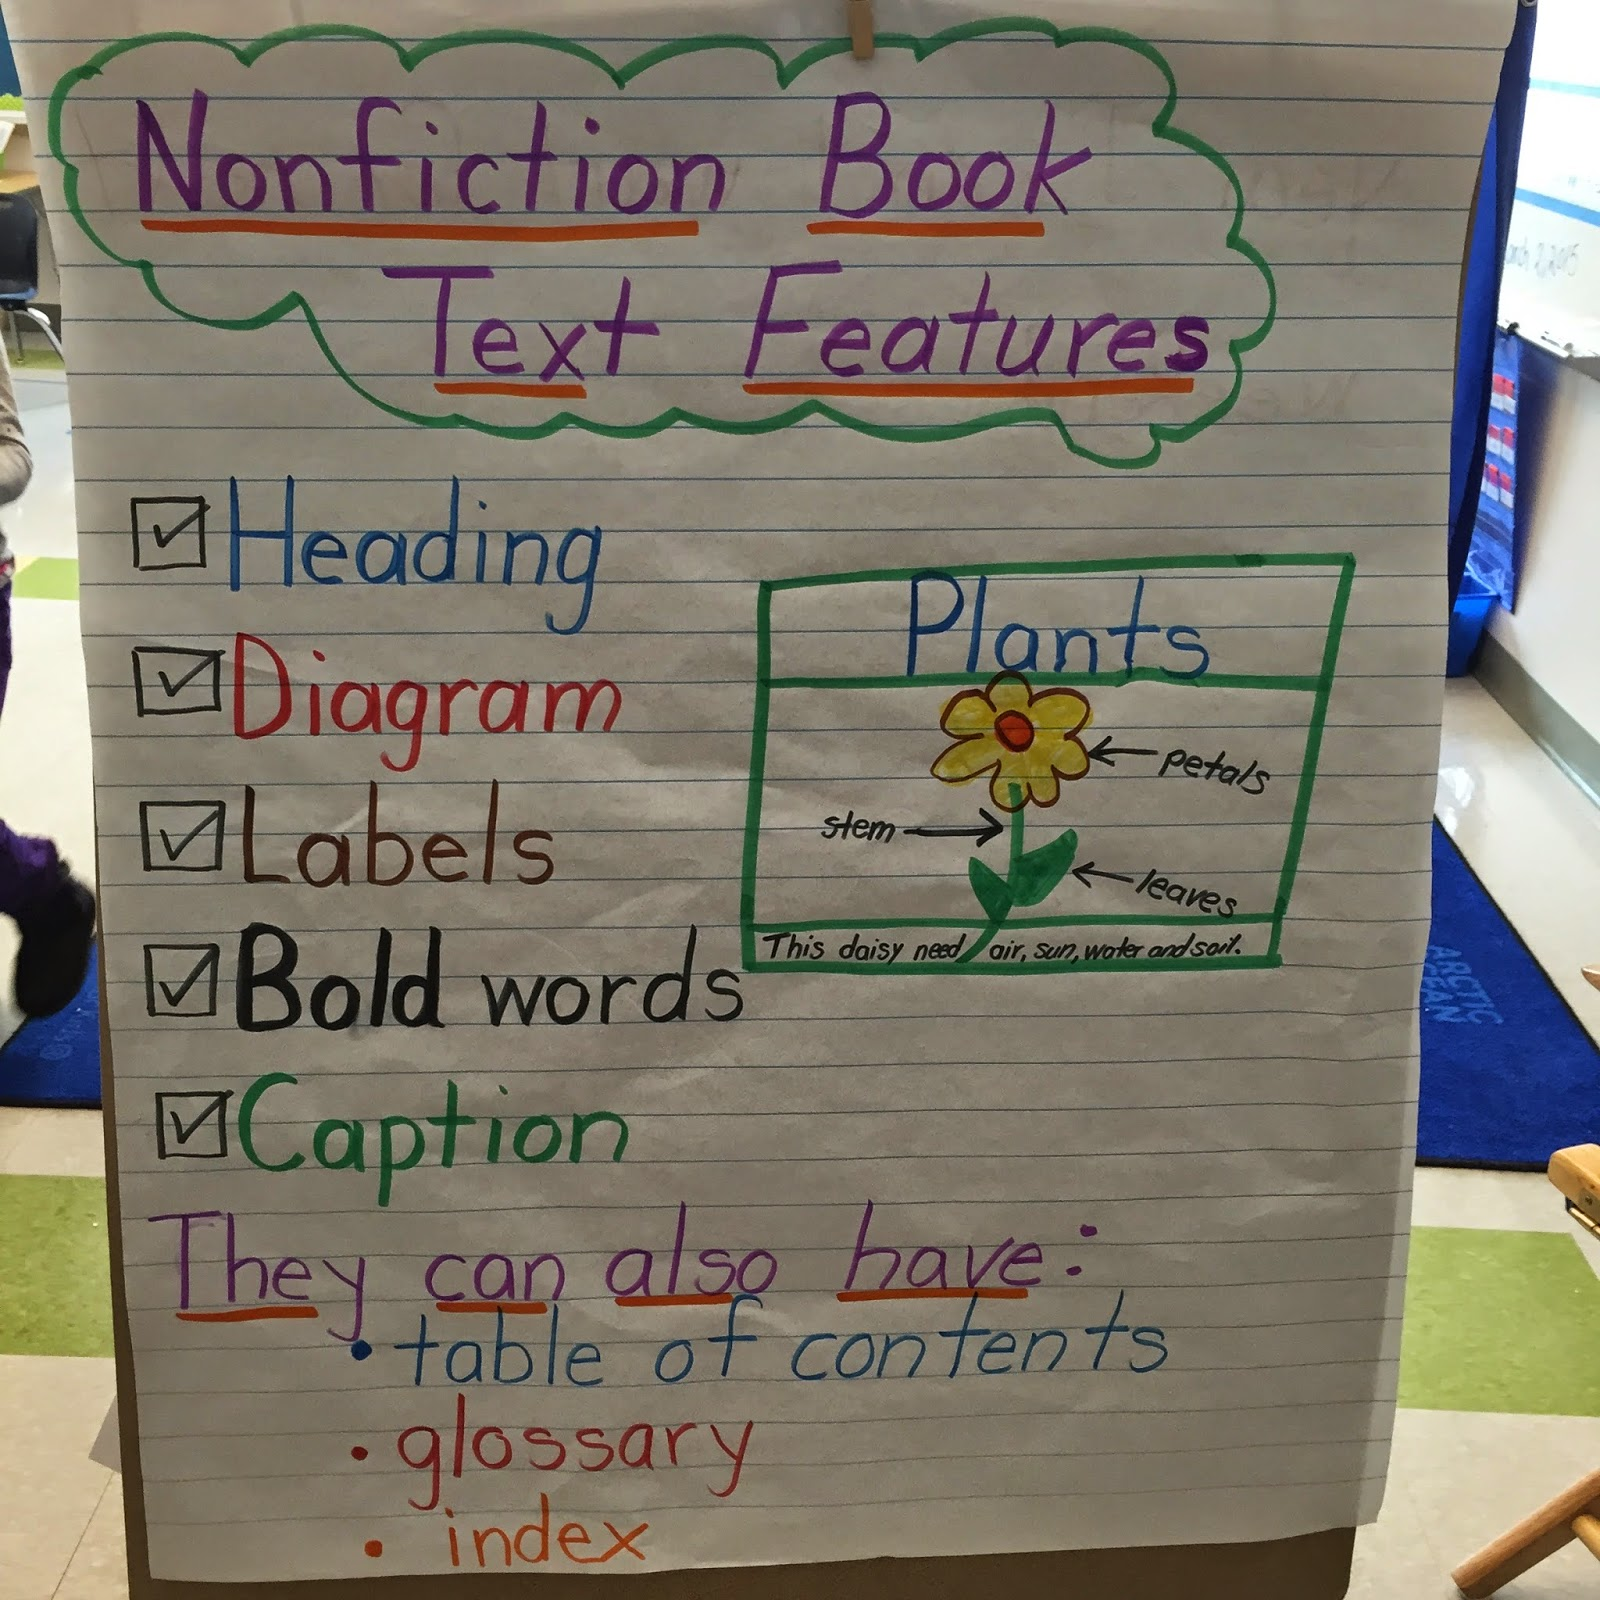 We Talked About What Each Feature Meant And They Identified Whether Their Text Had These Nonfiction Features After Recess Day Have A Silent